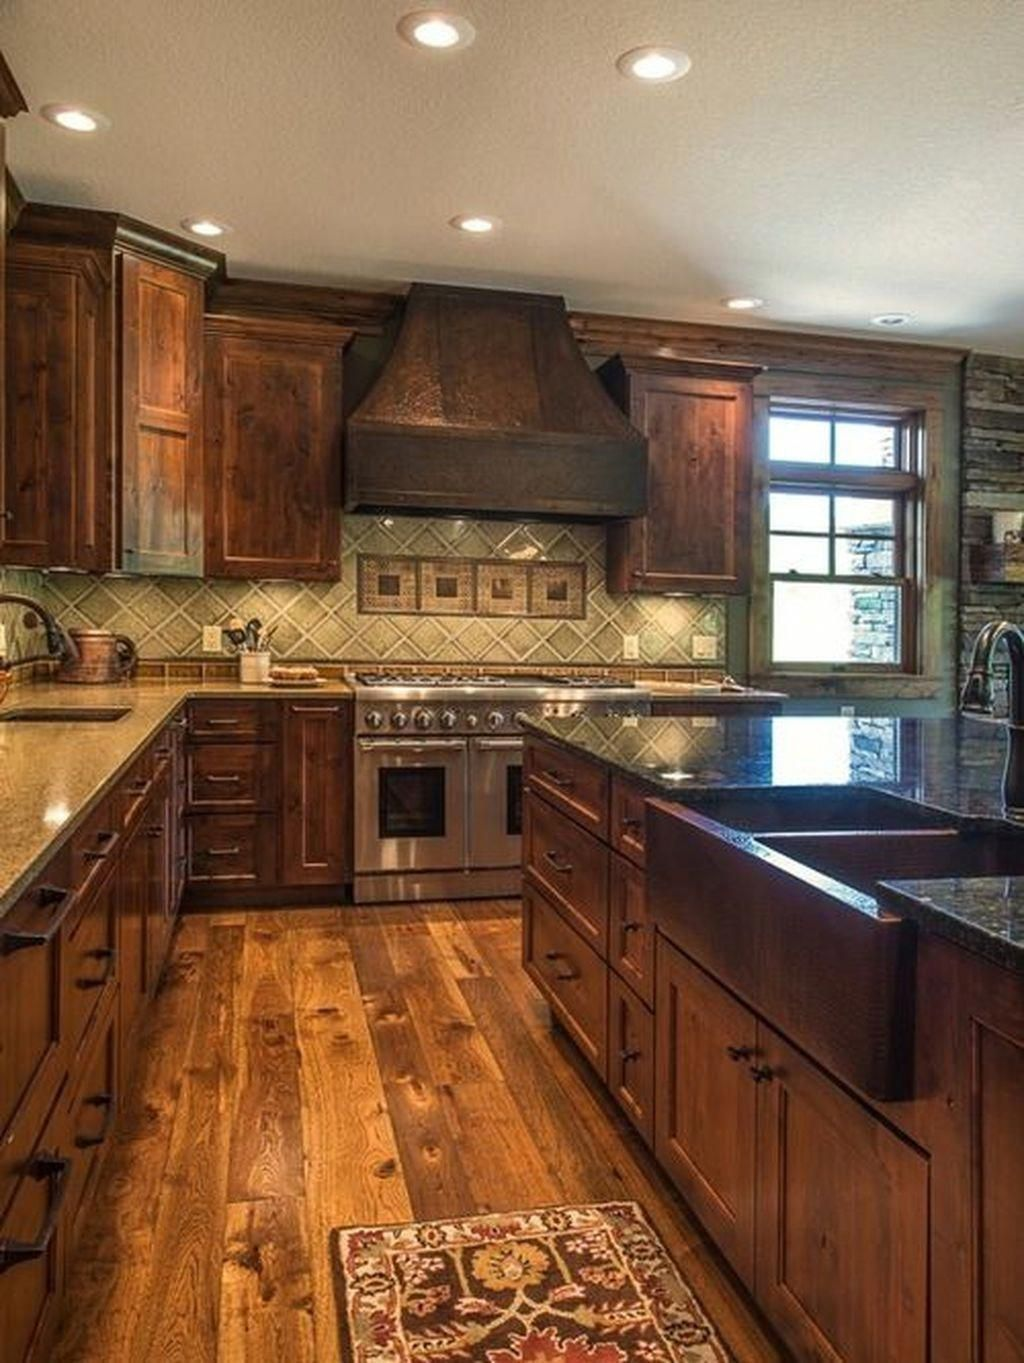 Rustic Kitchen Ideas - Browse photos of rustic kitchen layouts. Discover ideas for your mountain design kitchen remodel or upgrade with ideas for storage space, company, layout and also ... #rustickitchen #kitchenideas #rustickitchendresser #kitchenphotos #remodelingorroomdesign